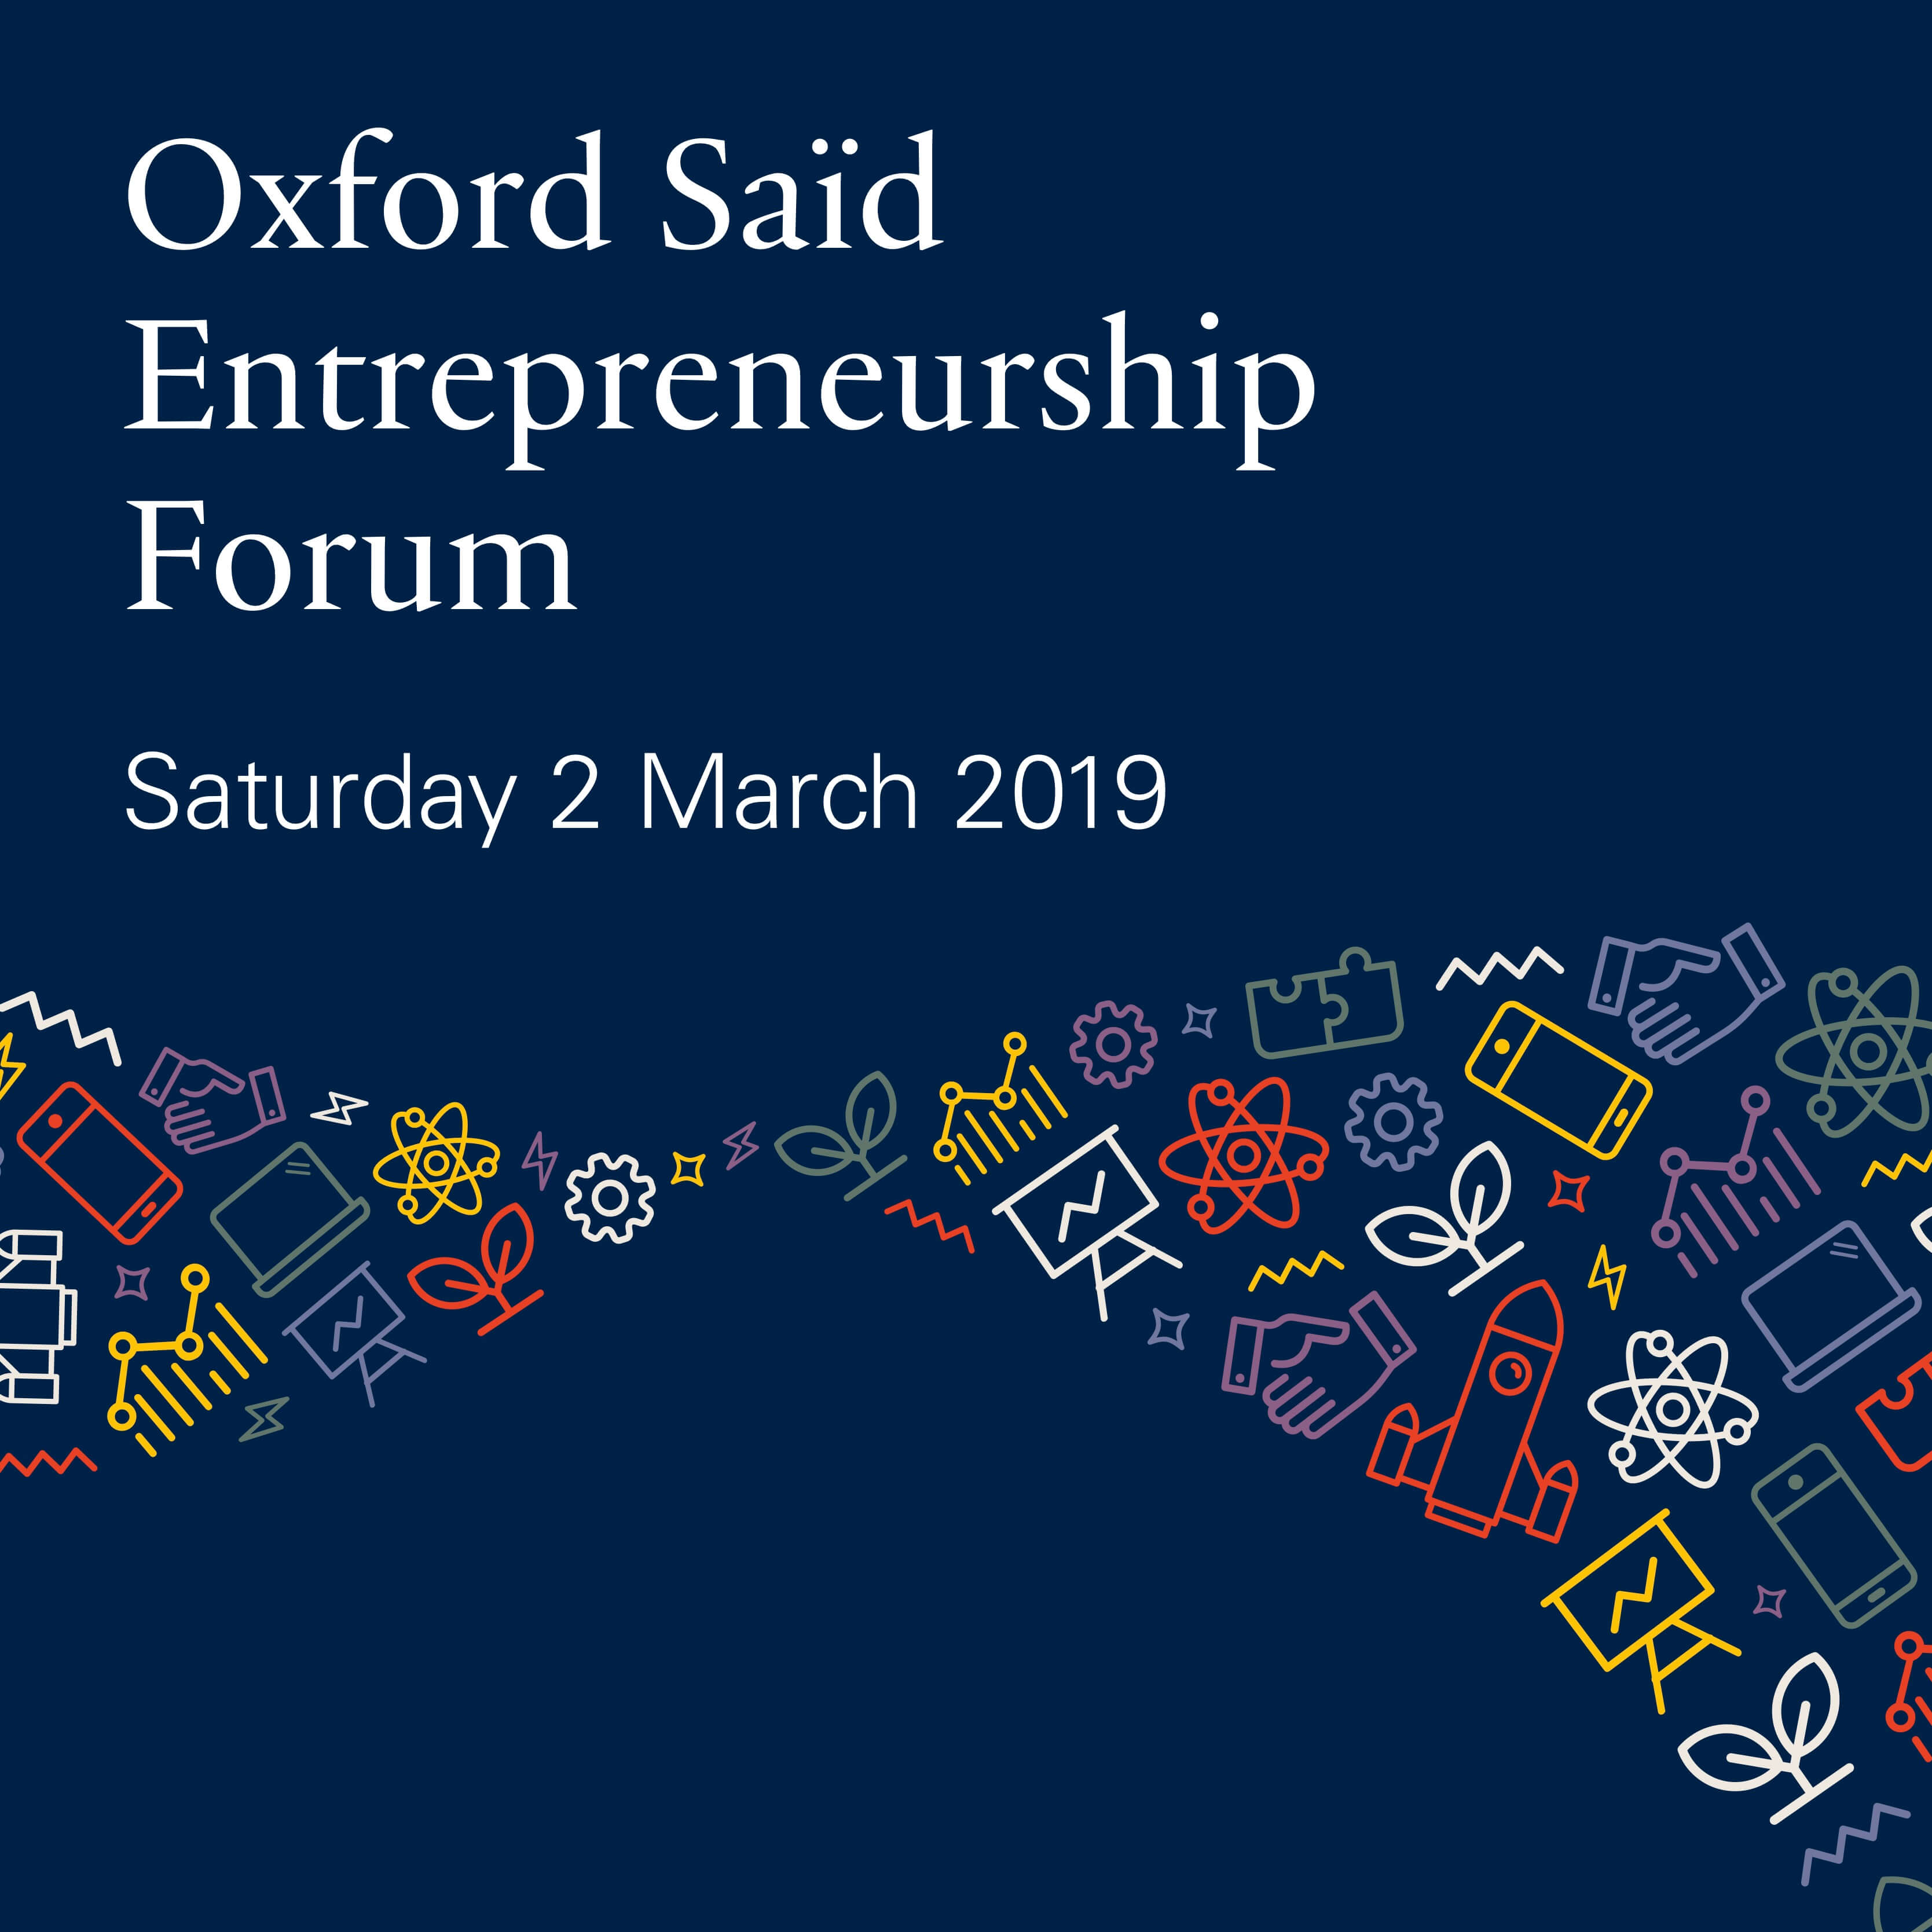 Oxford Saïd Entrepreneurship Forum